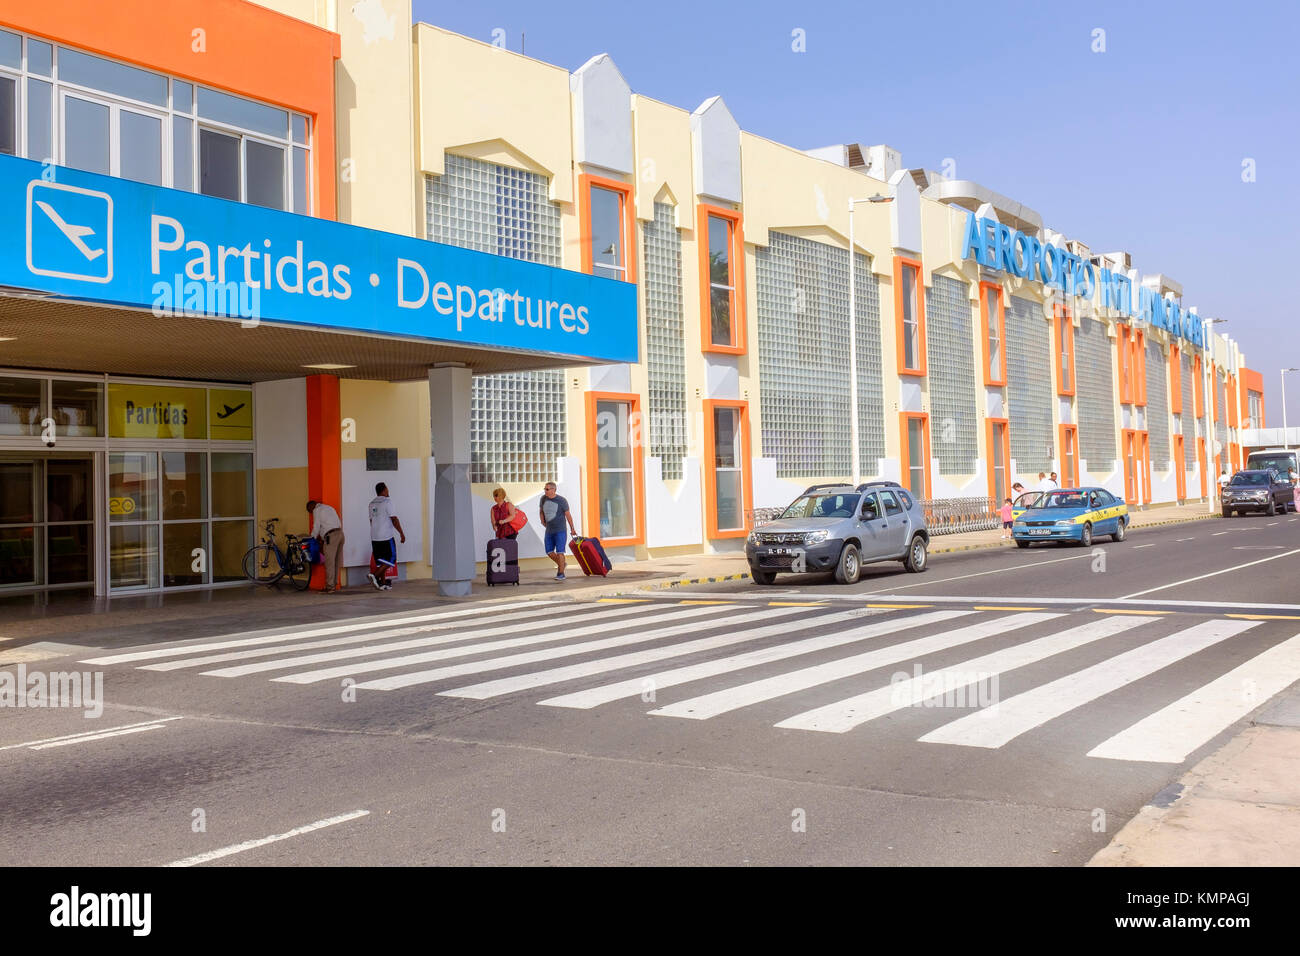 Access to the departure lounge at Amilcar Cabral International Airport, Cape Verde, Africa - Stock Image